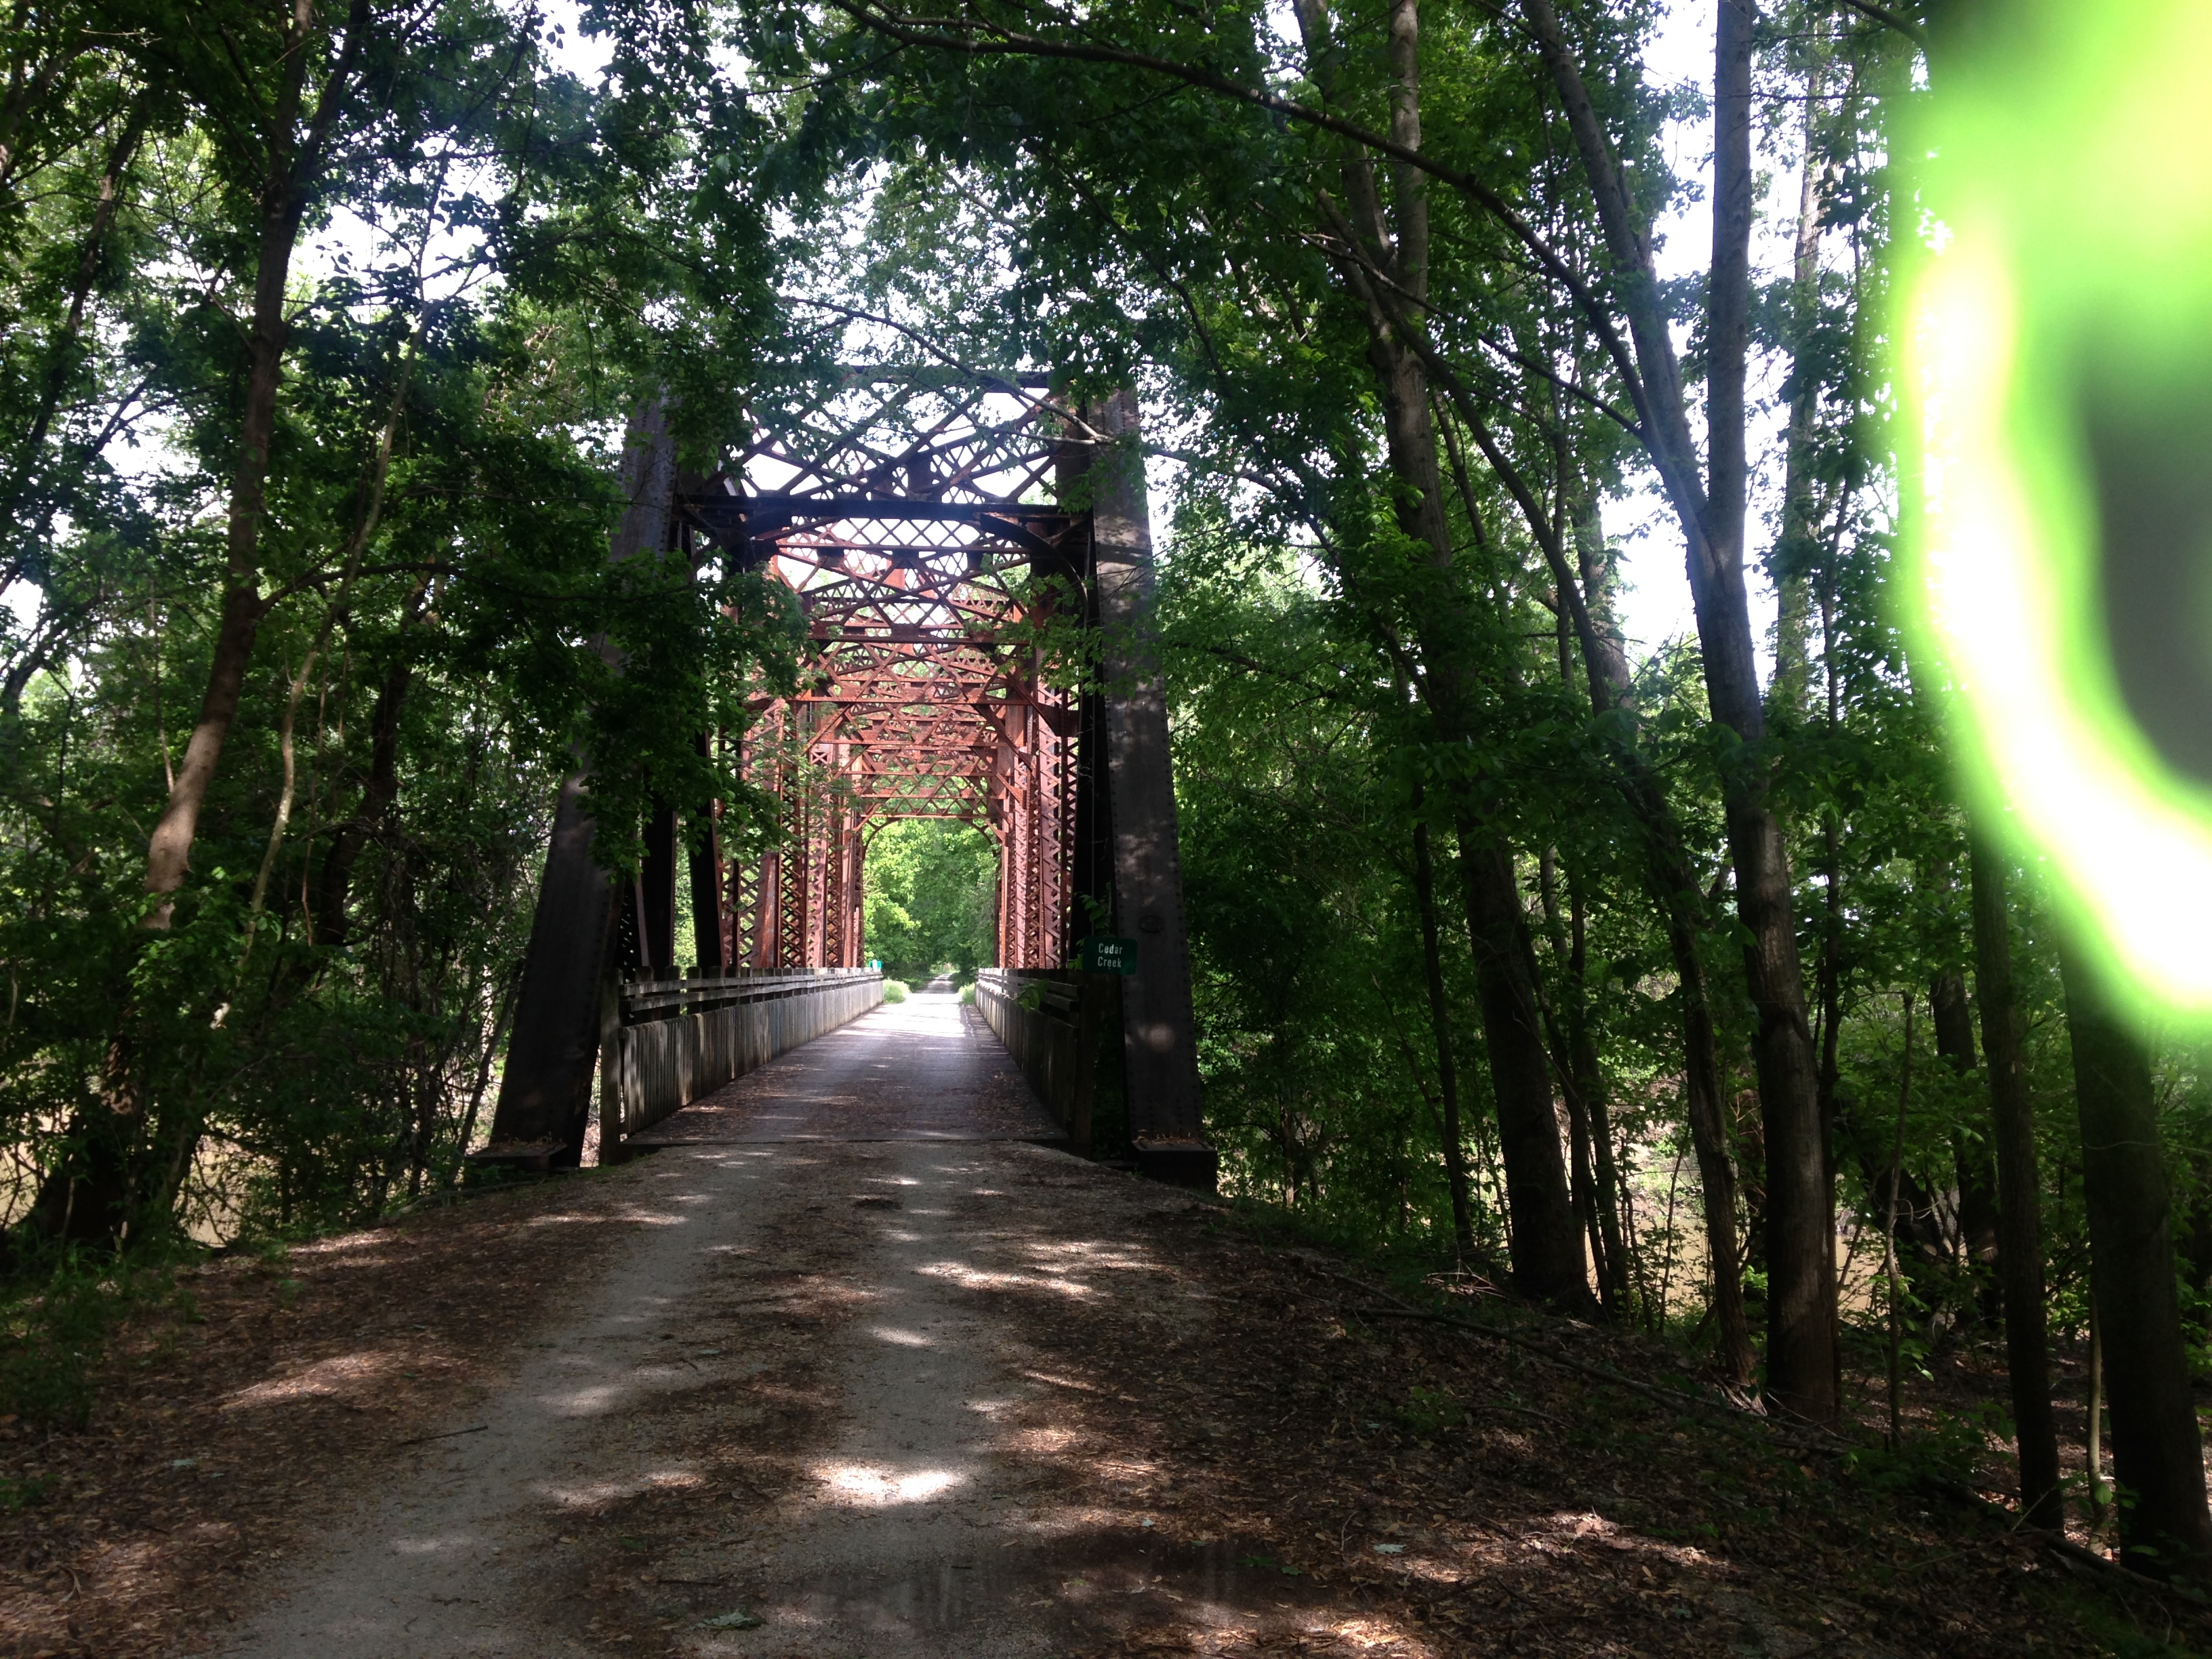 Katy Trail Missouri Bike Ride Travelreporter S Blog